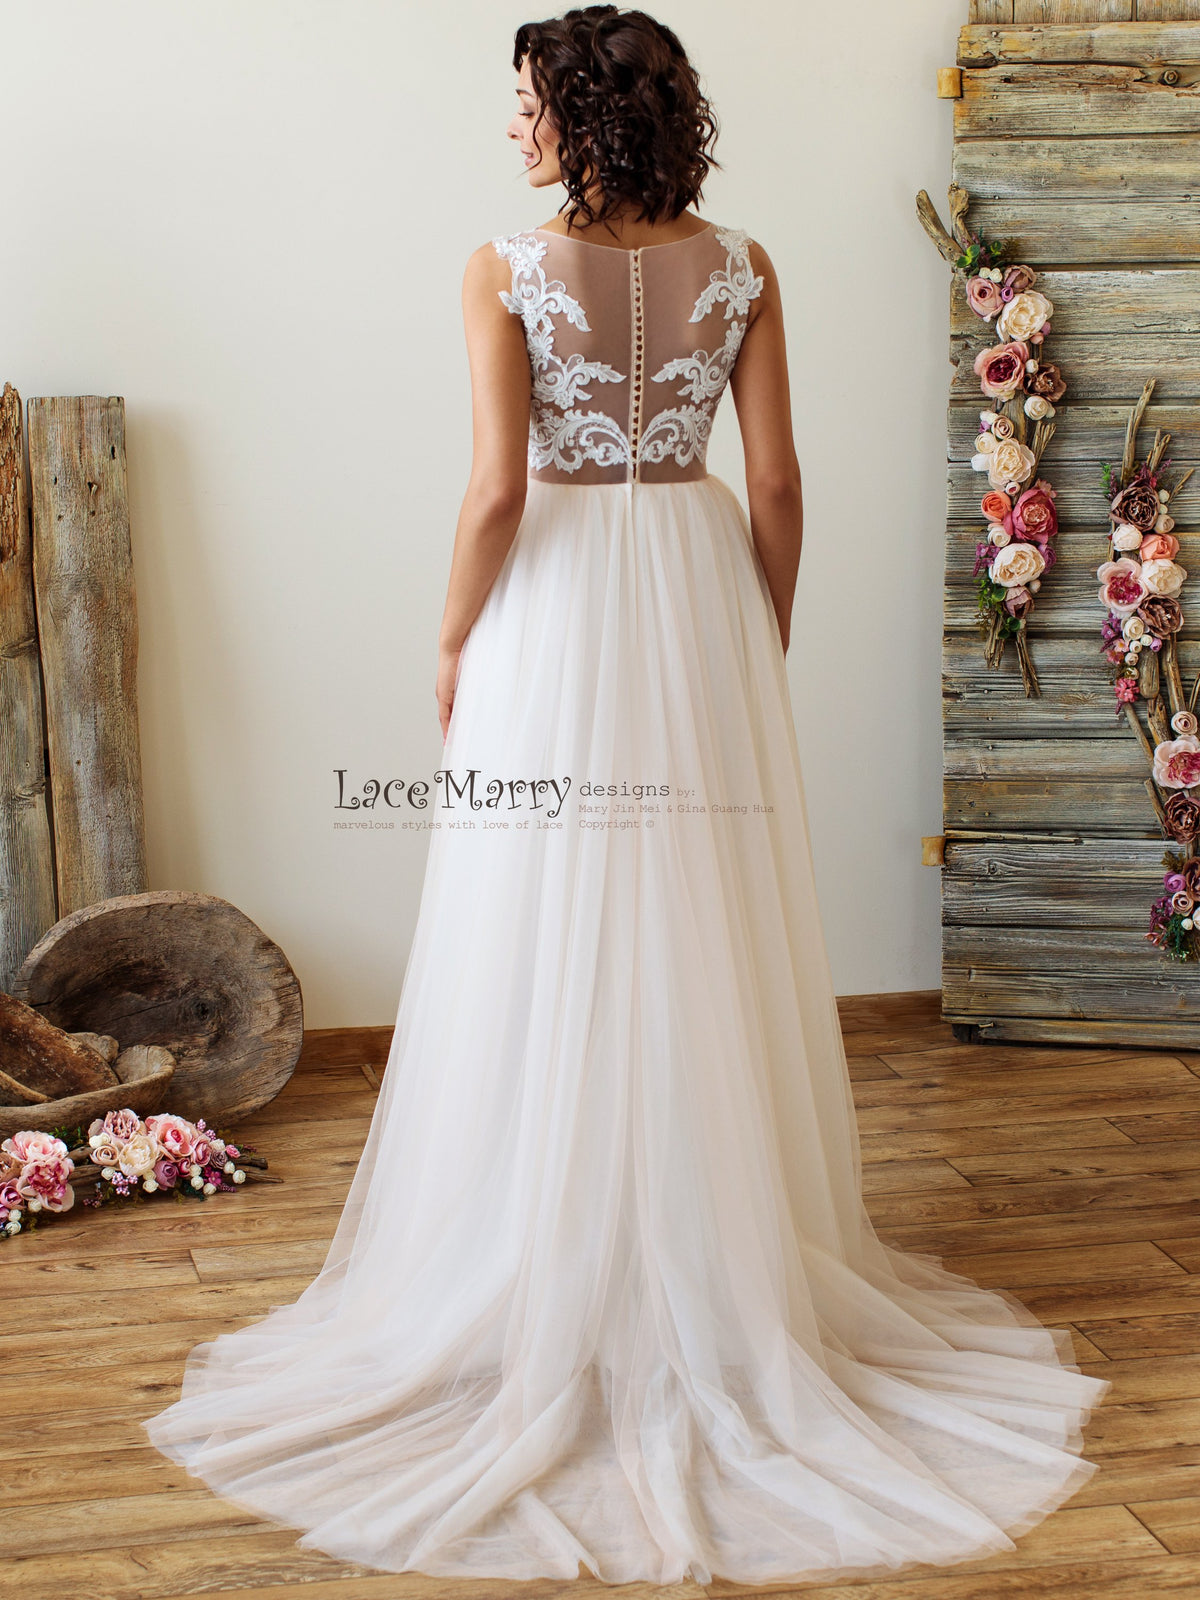 Illusion Back Wedding Dress with Ombre Skirt